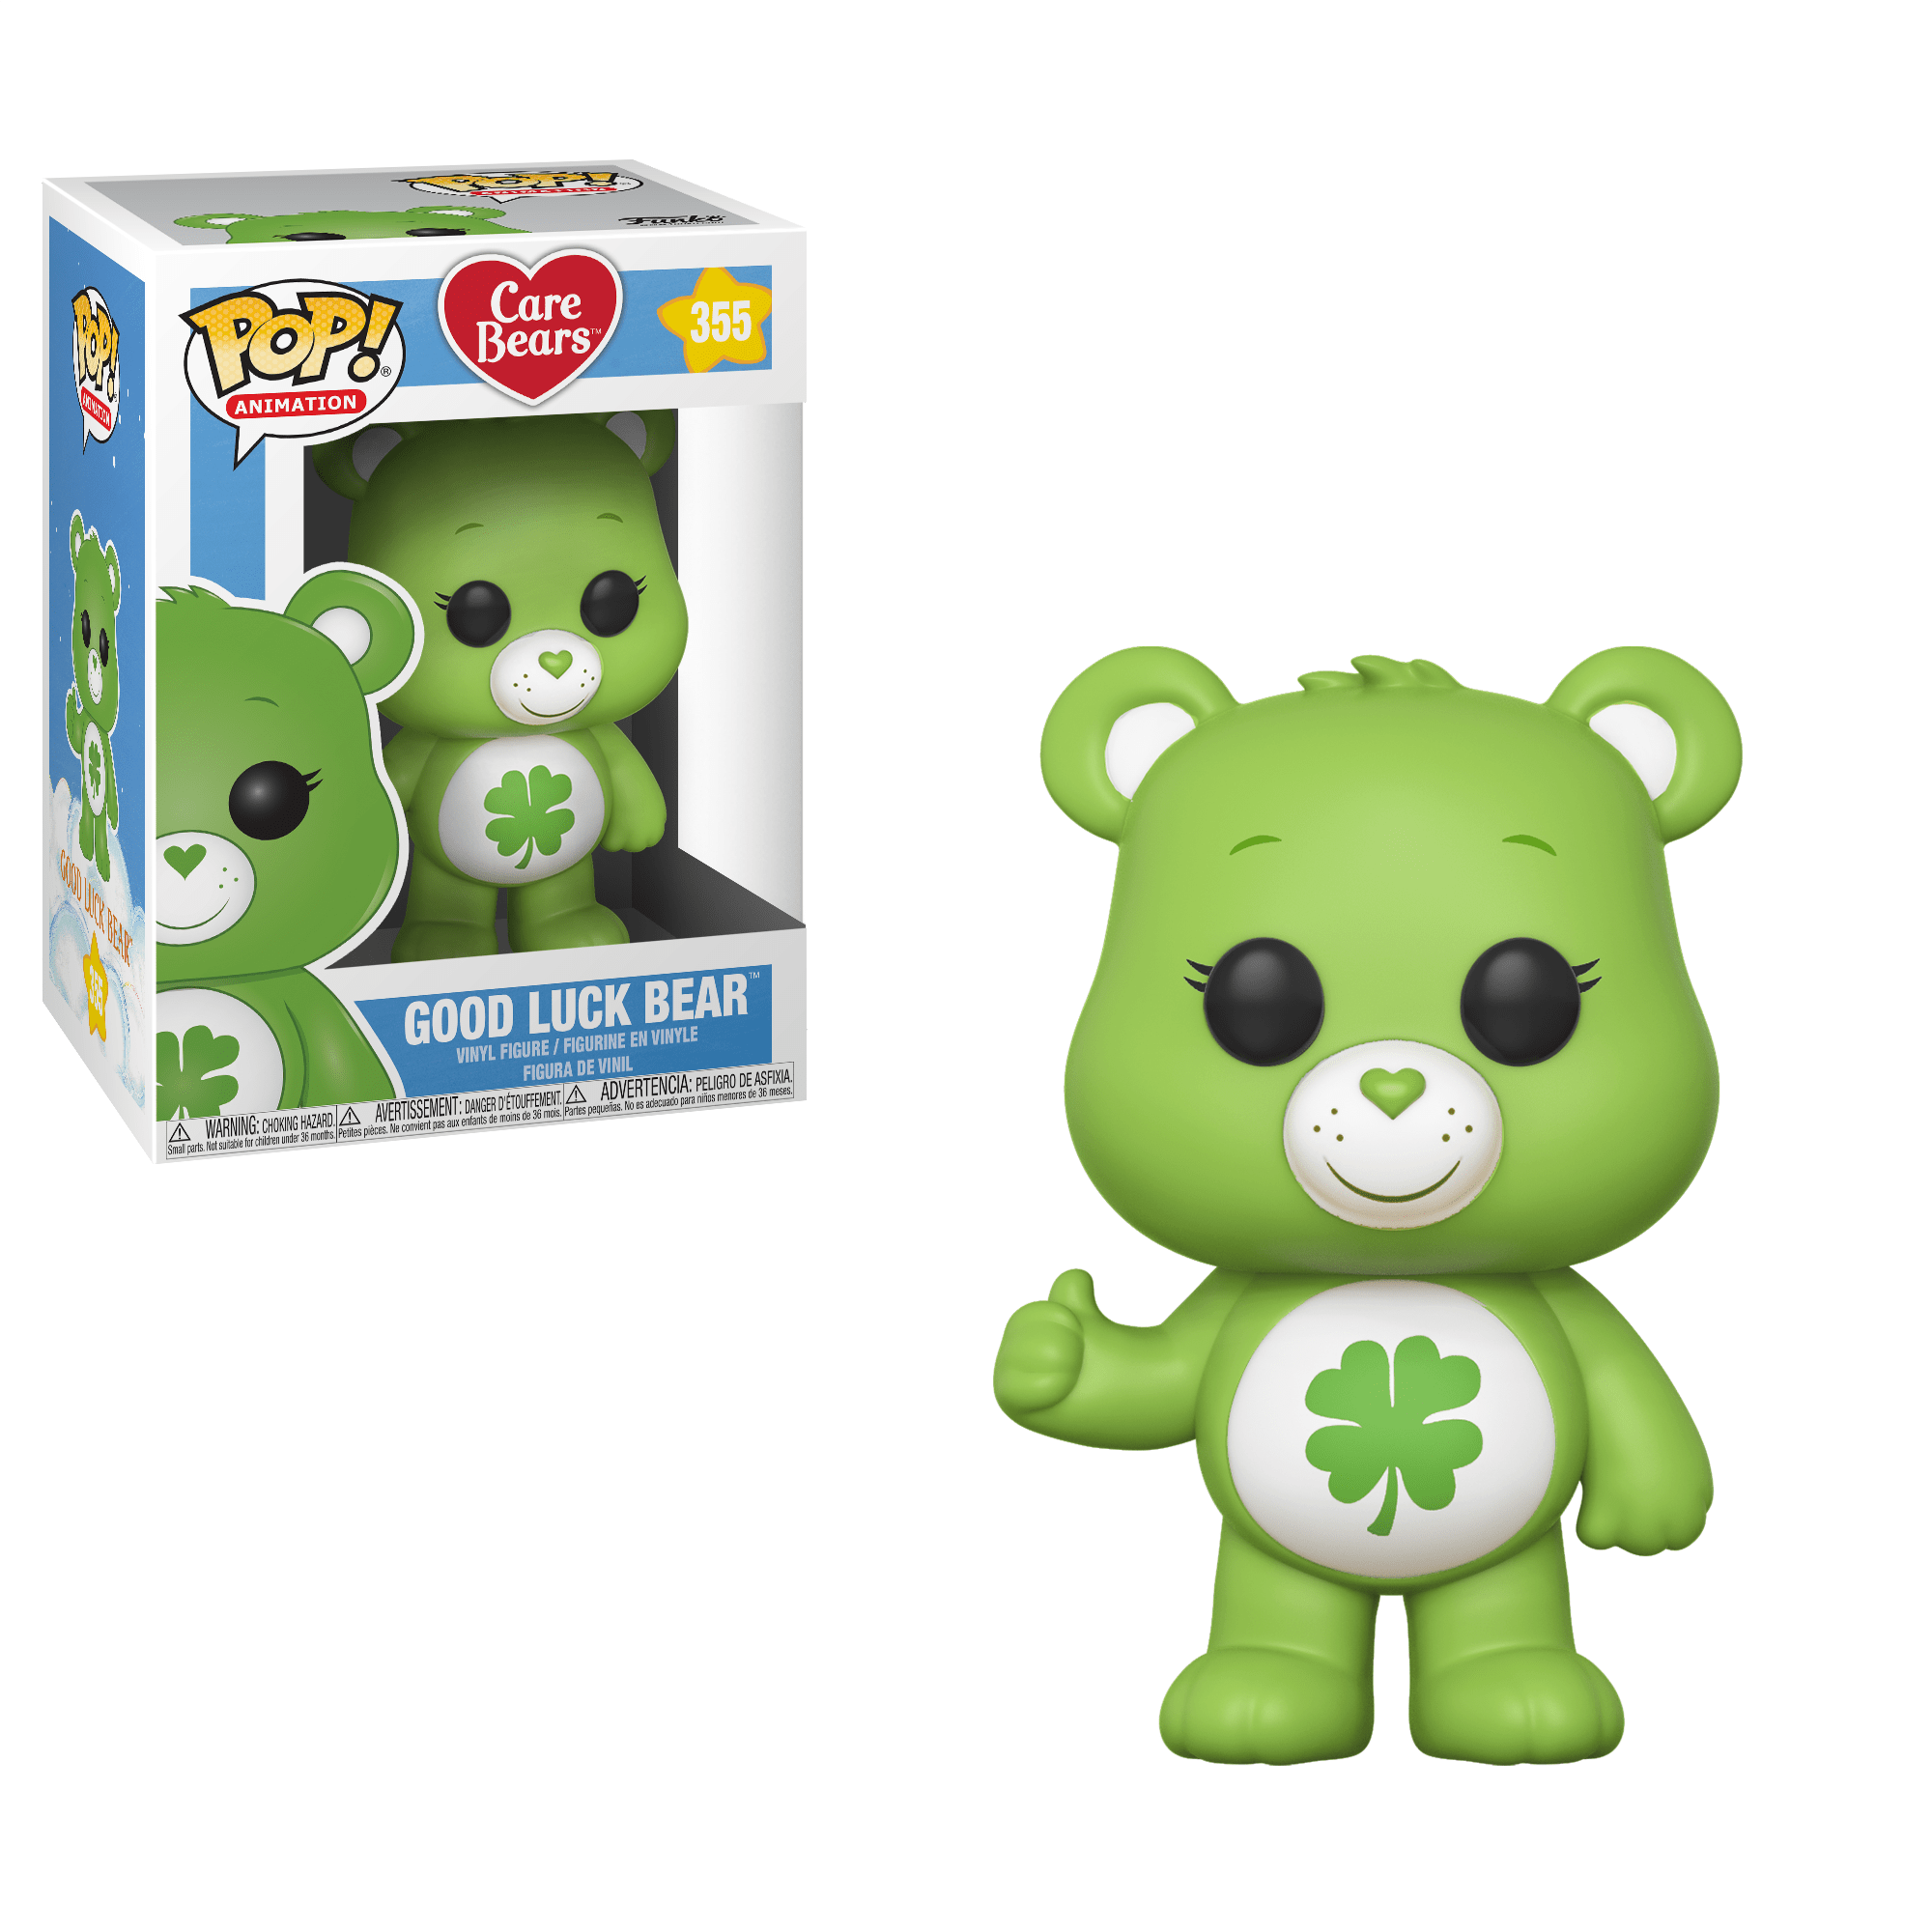 Funko Pop! Good Luck Bear (Care Bears)